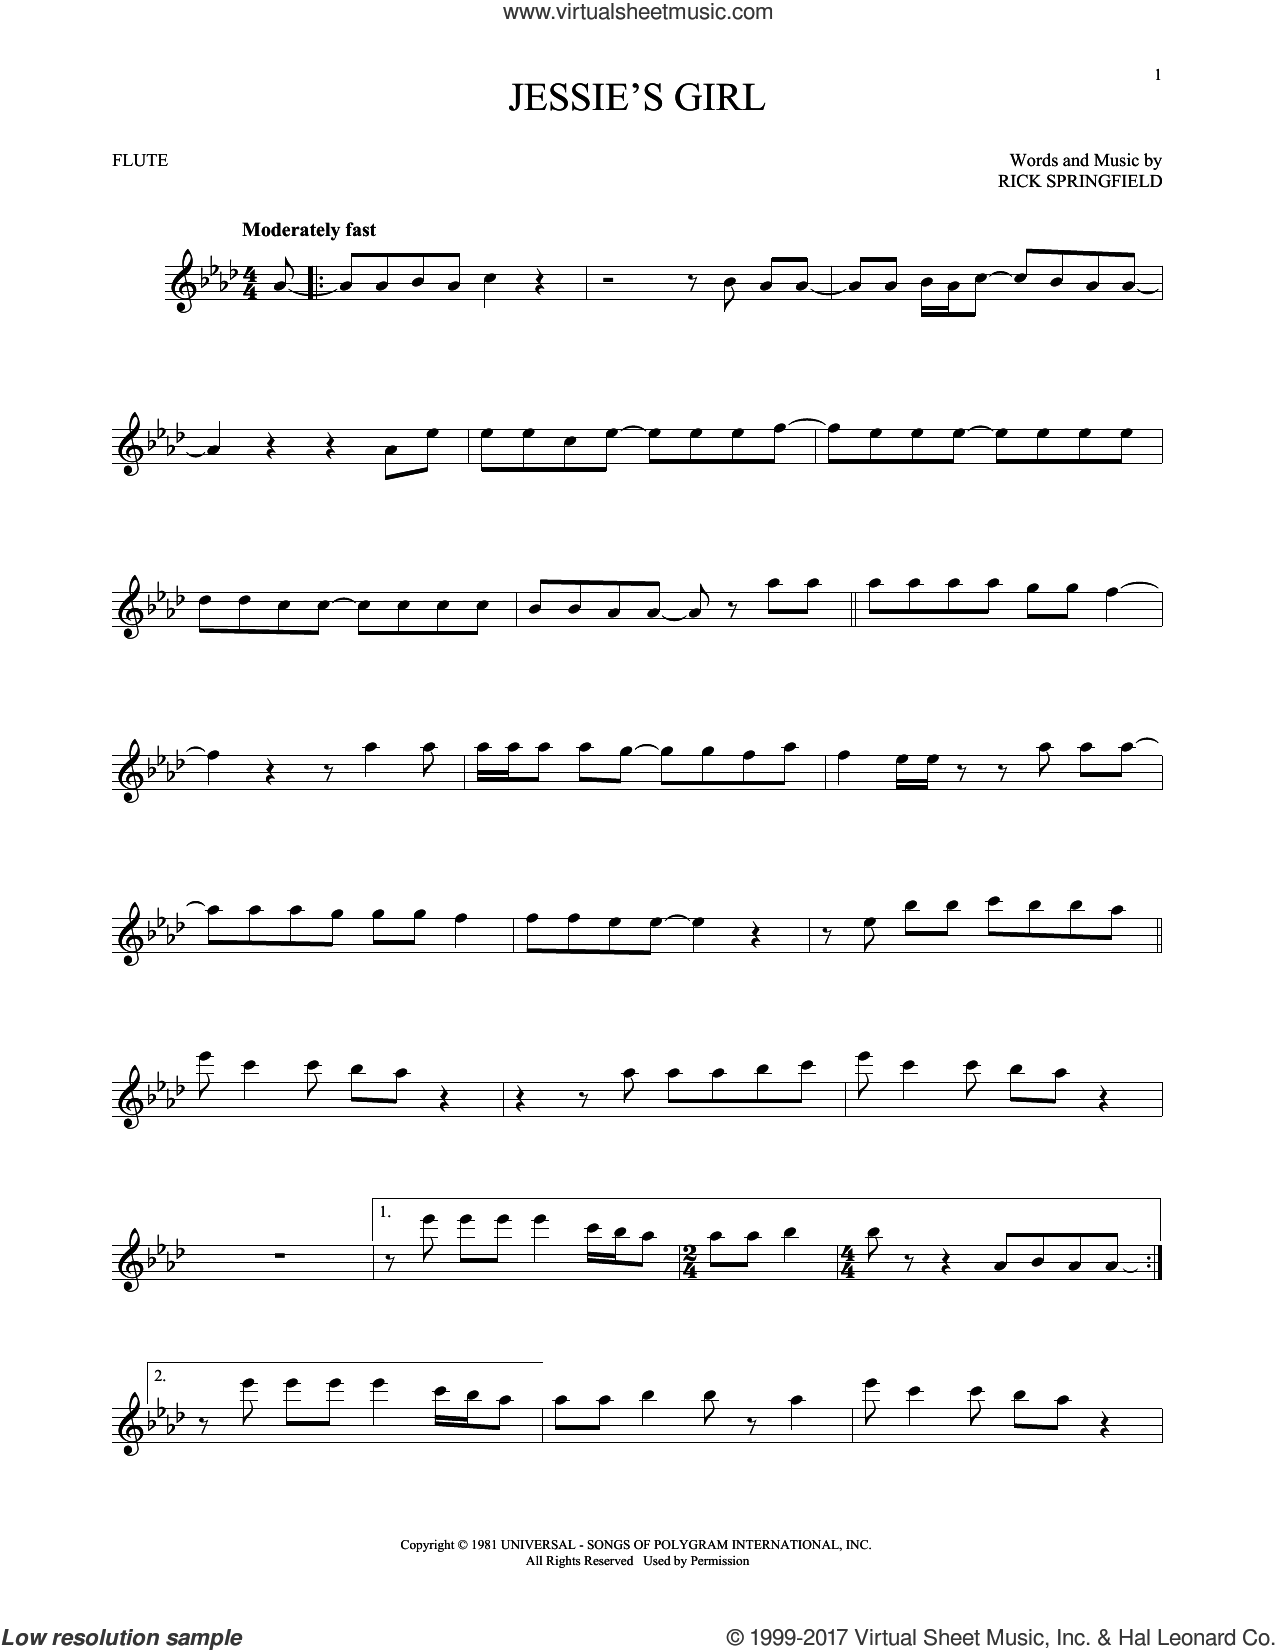 Jessie's Girl sheet music for flute solo by Rick Springfield, intermediate skill level